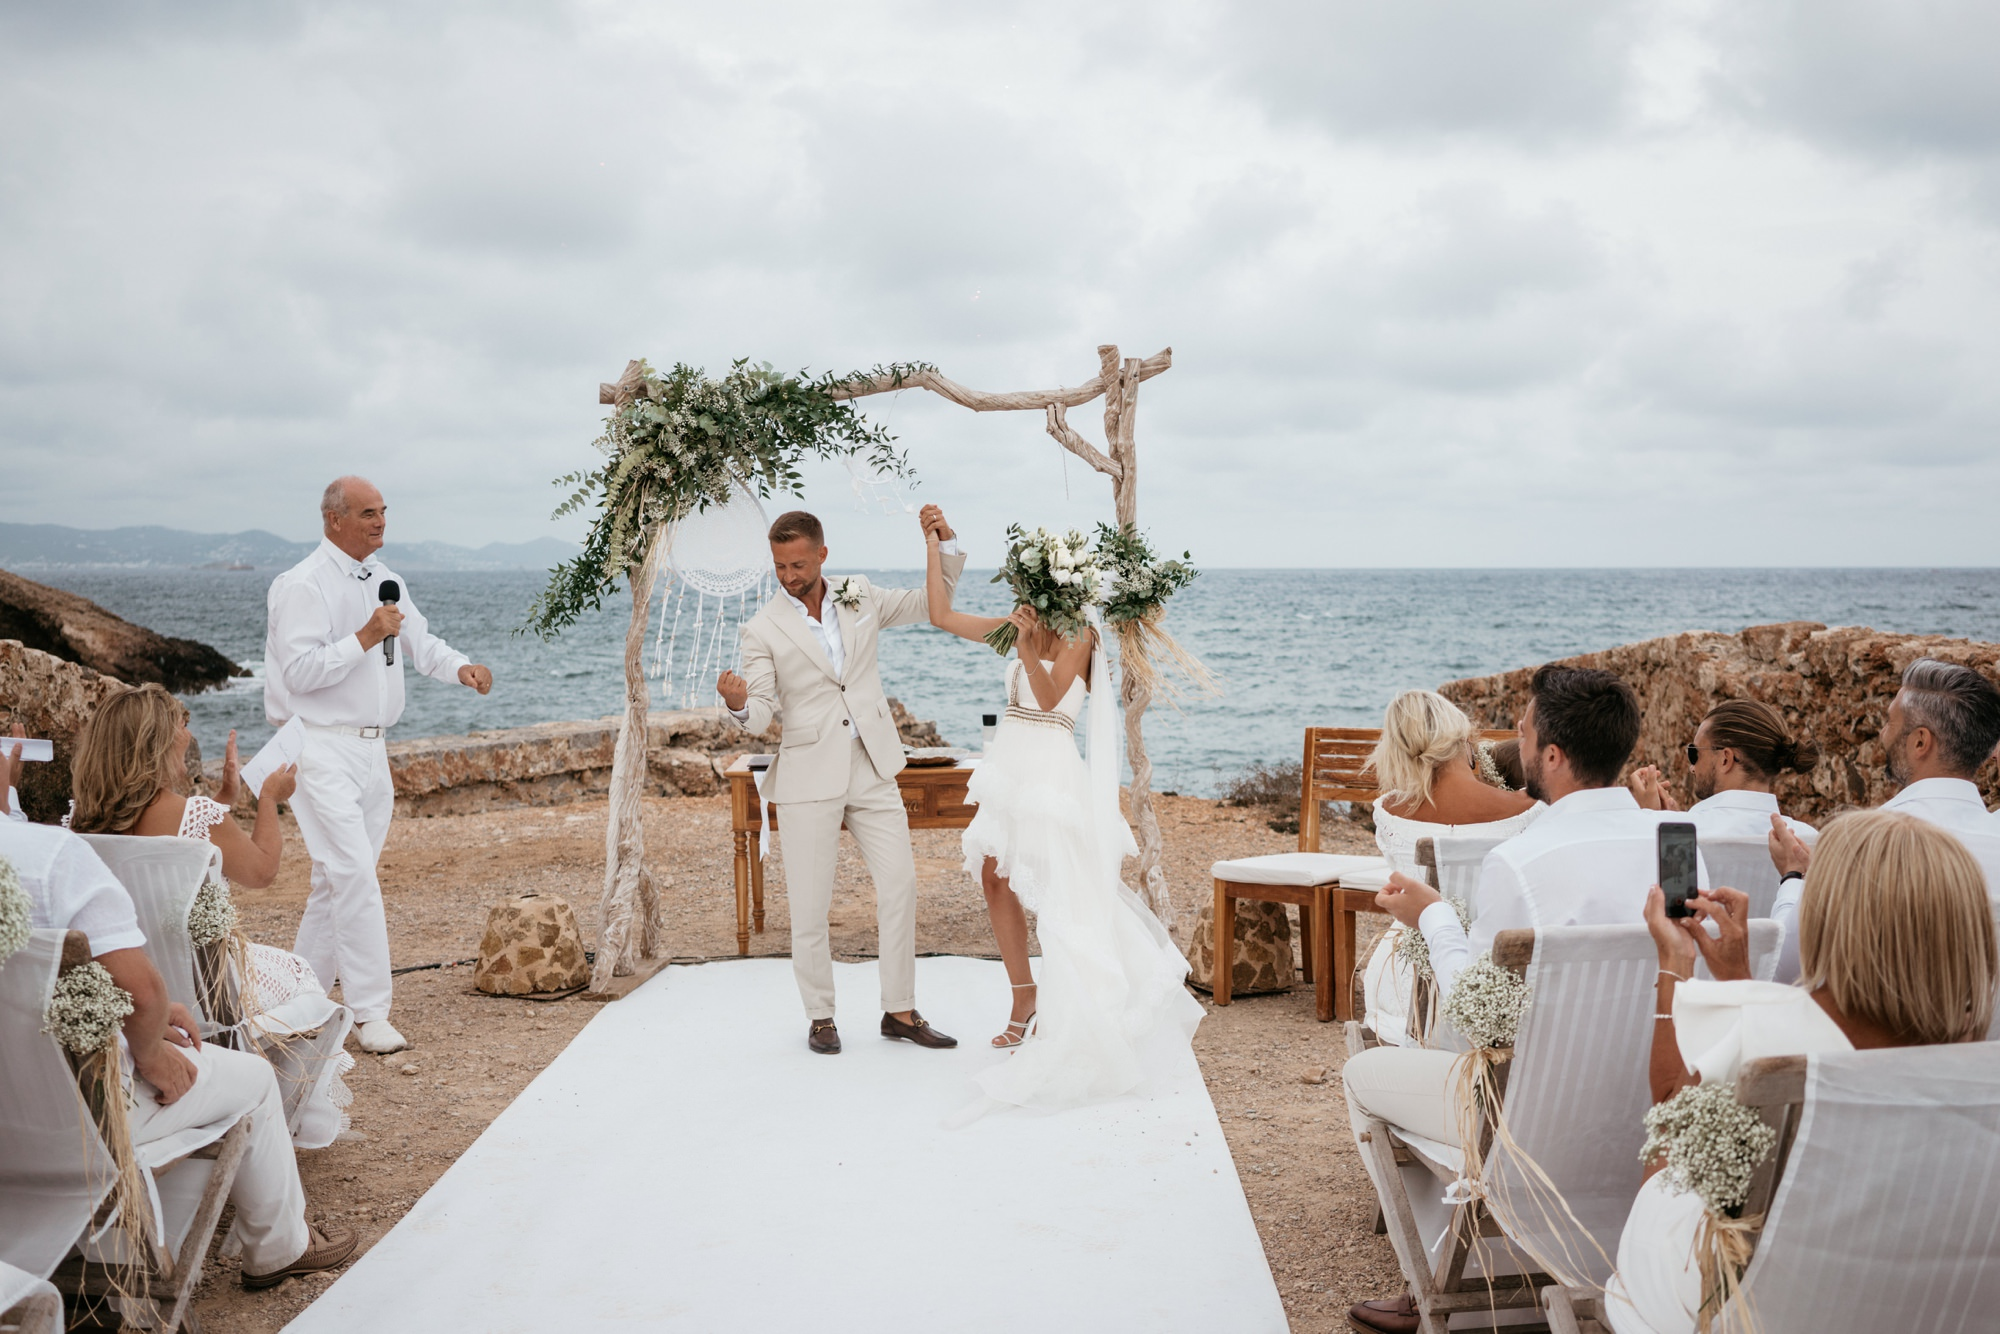 natural wedding photo destination la escollera ibiza 0073 1